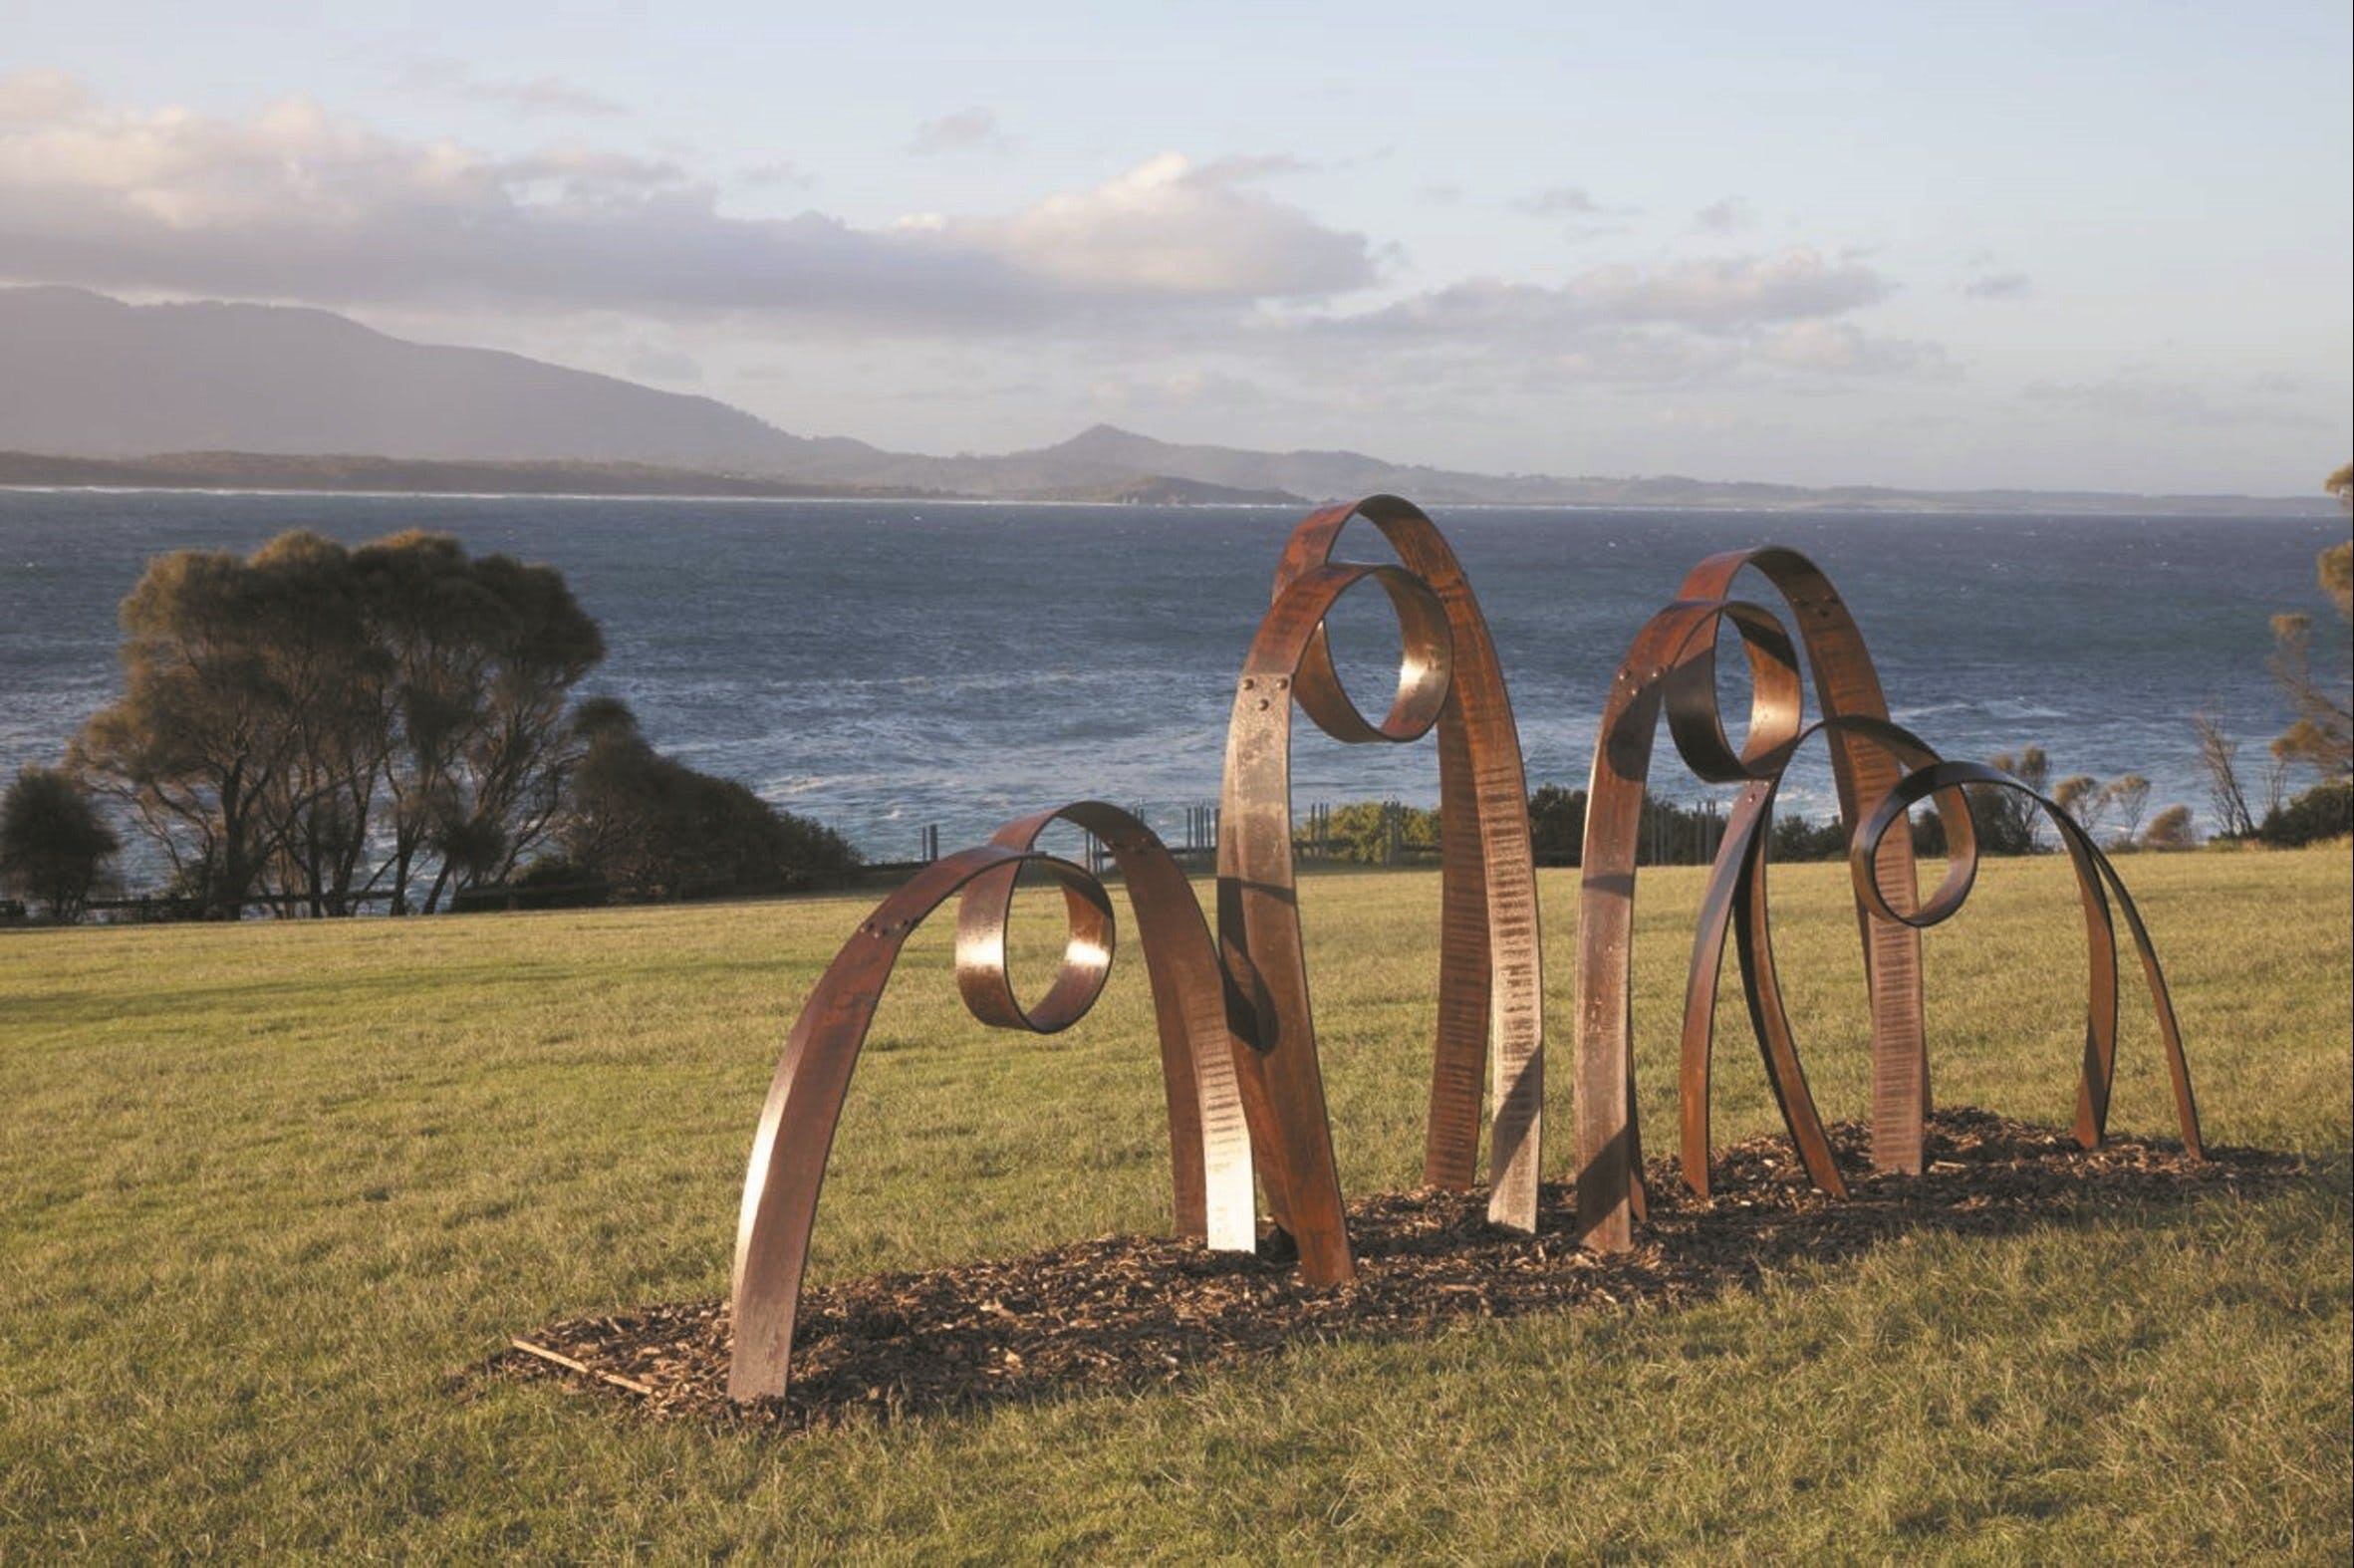 Sculpture Bermagui - Accommodation Perth